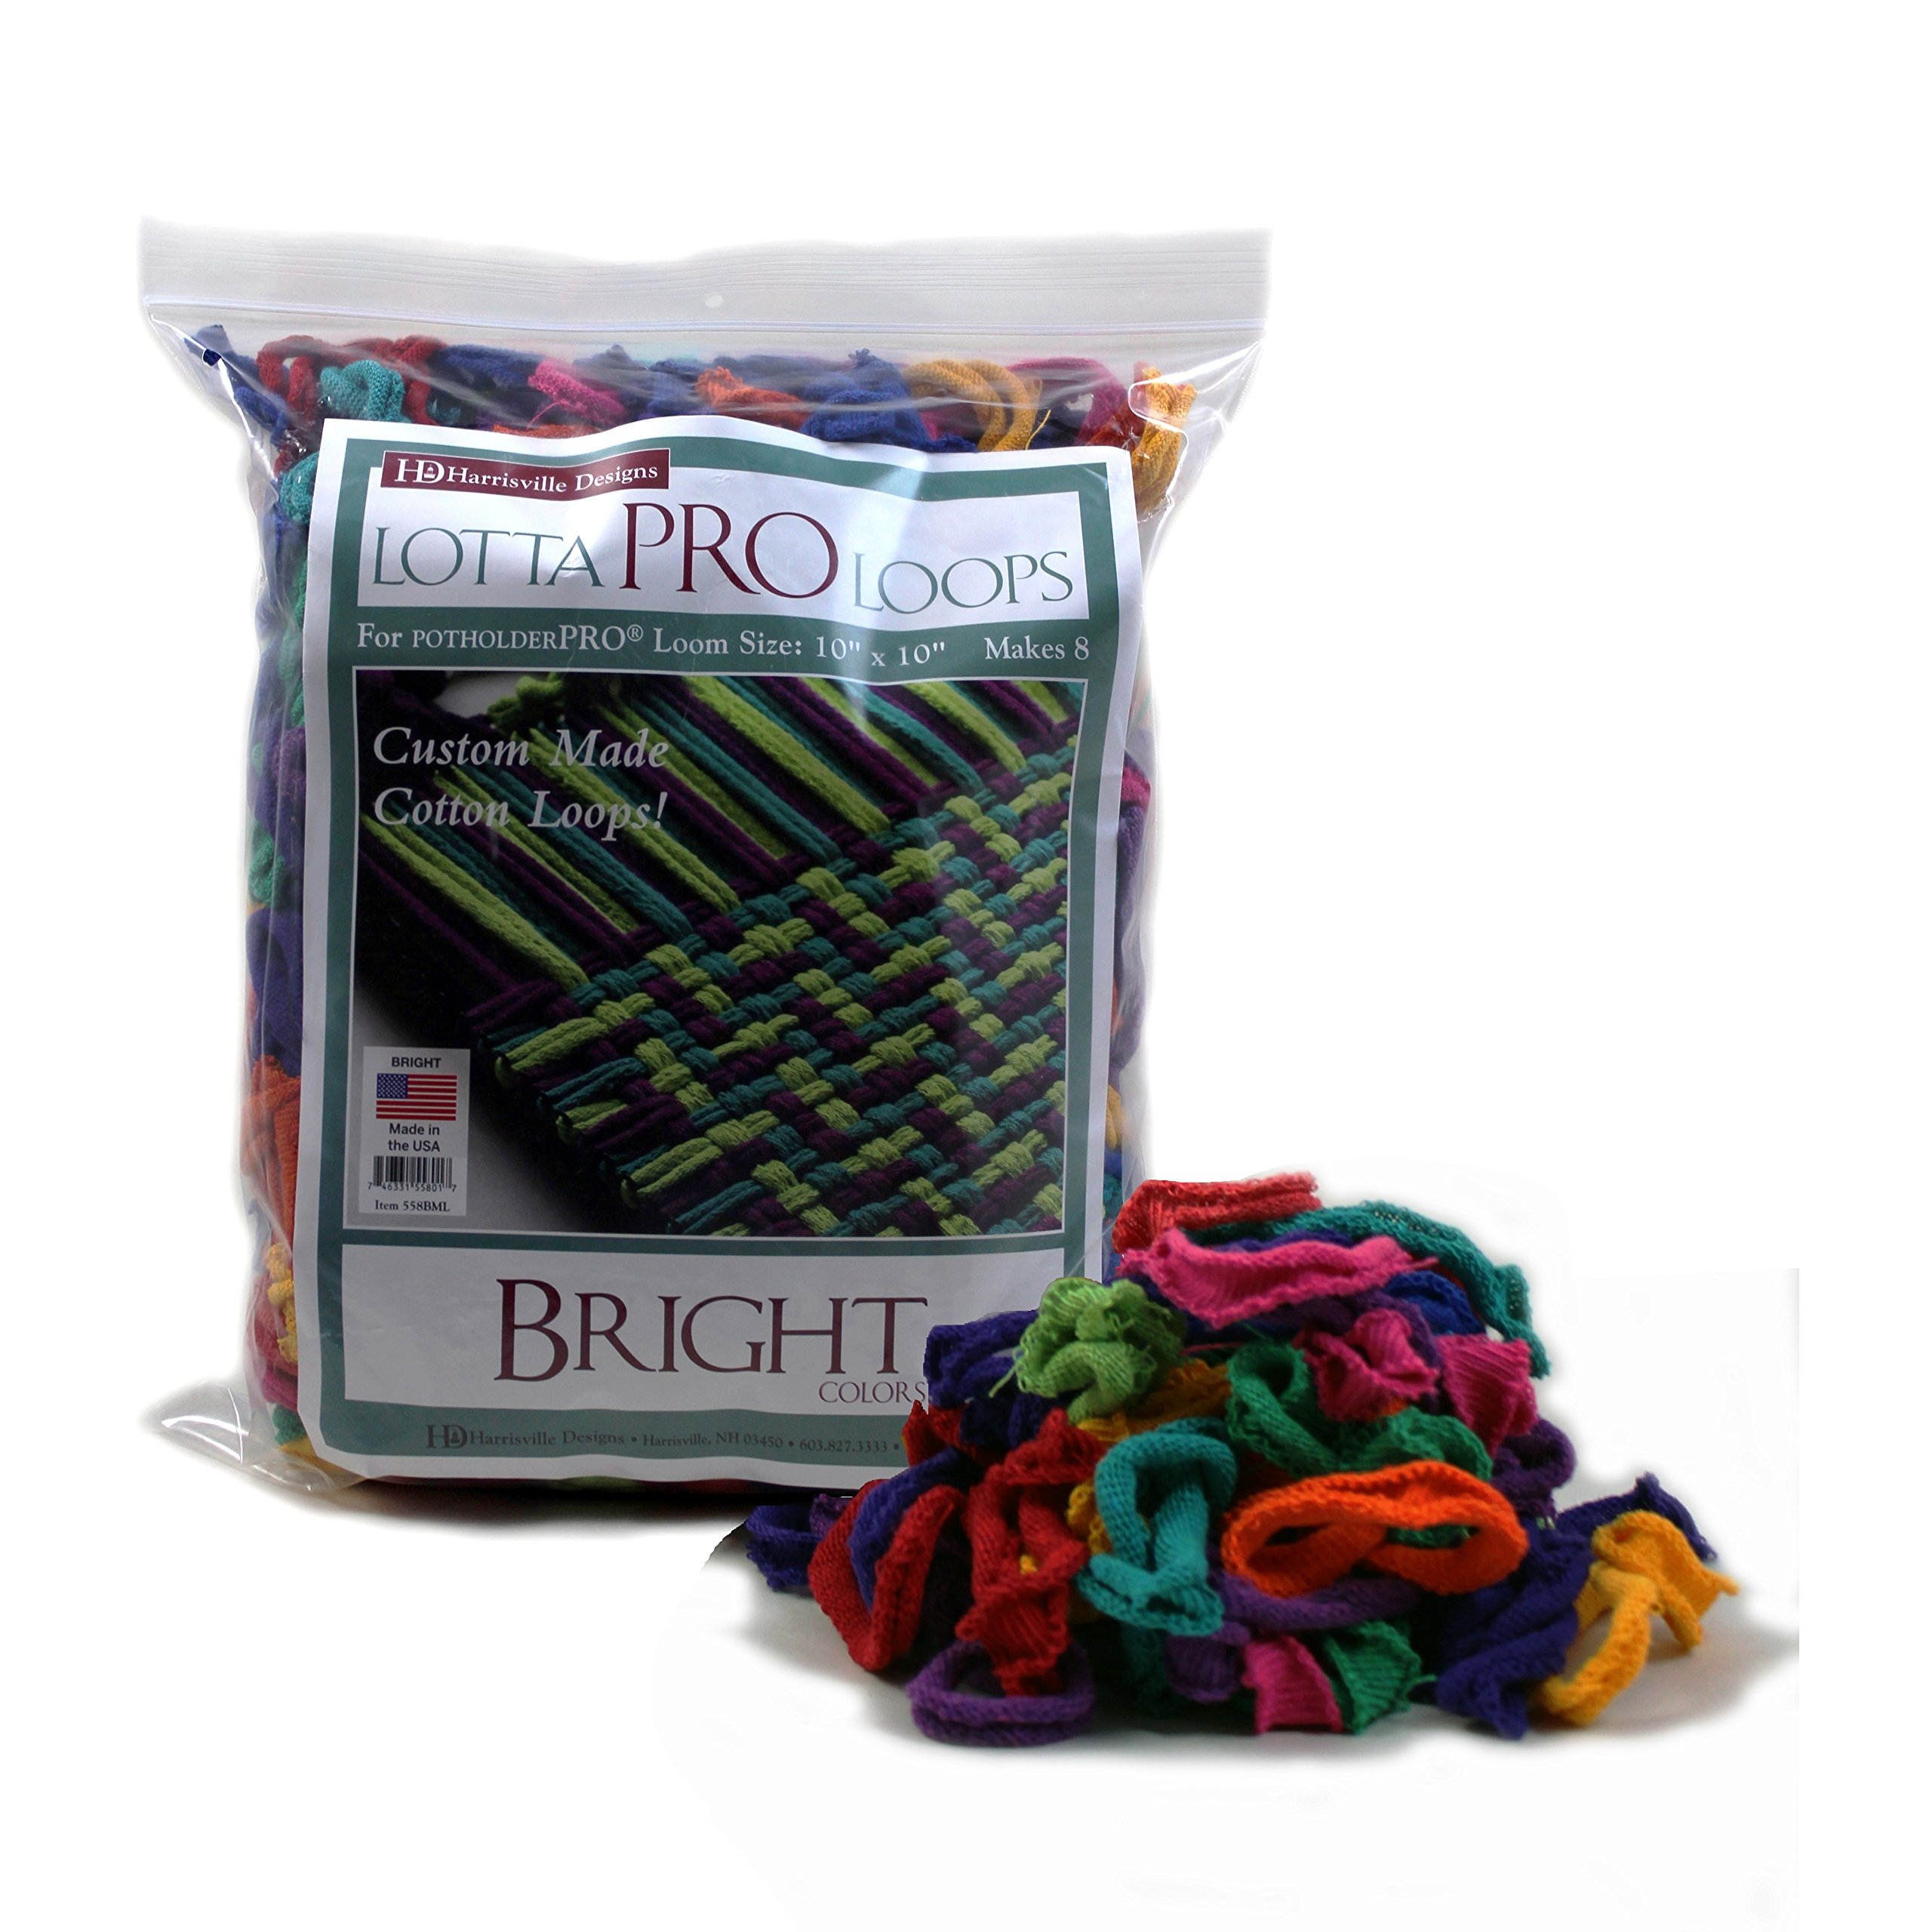 Harrisville 10'' Pro Bright Lotta Loops in Assorted Colors - Makes 8 Potholders by Harrisville Designs